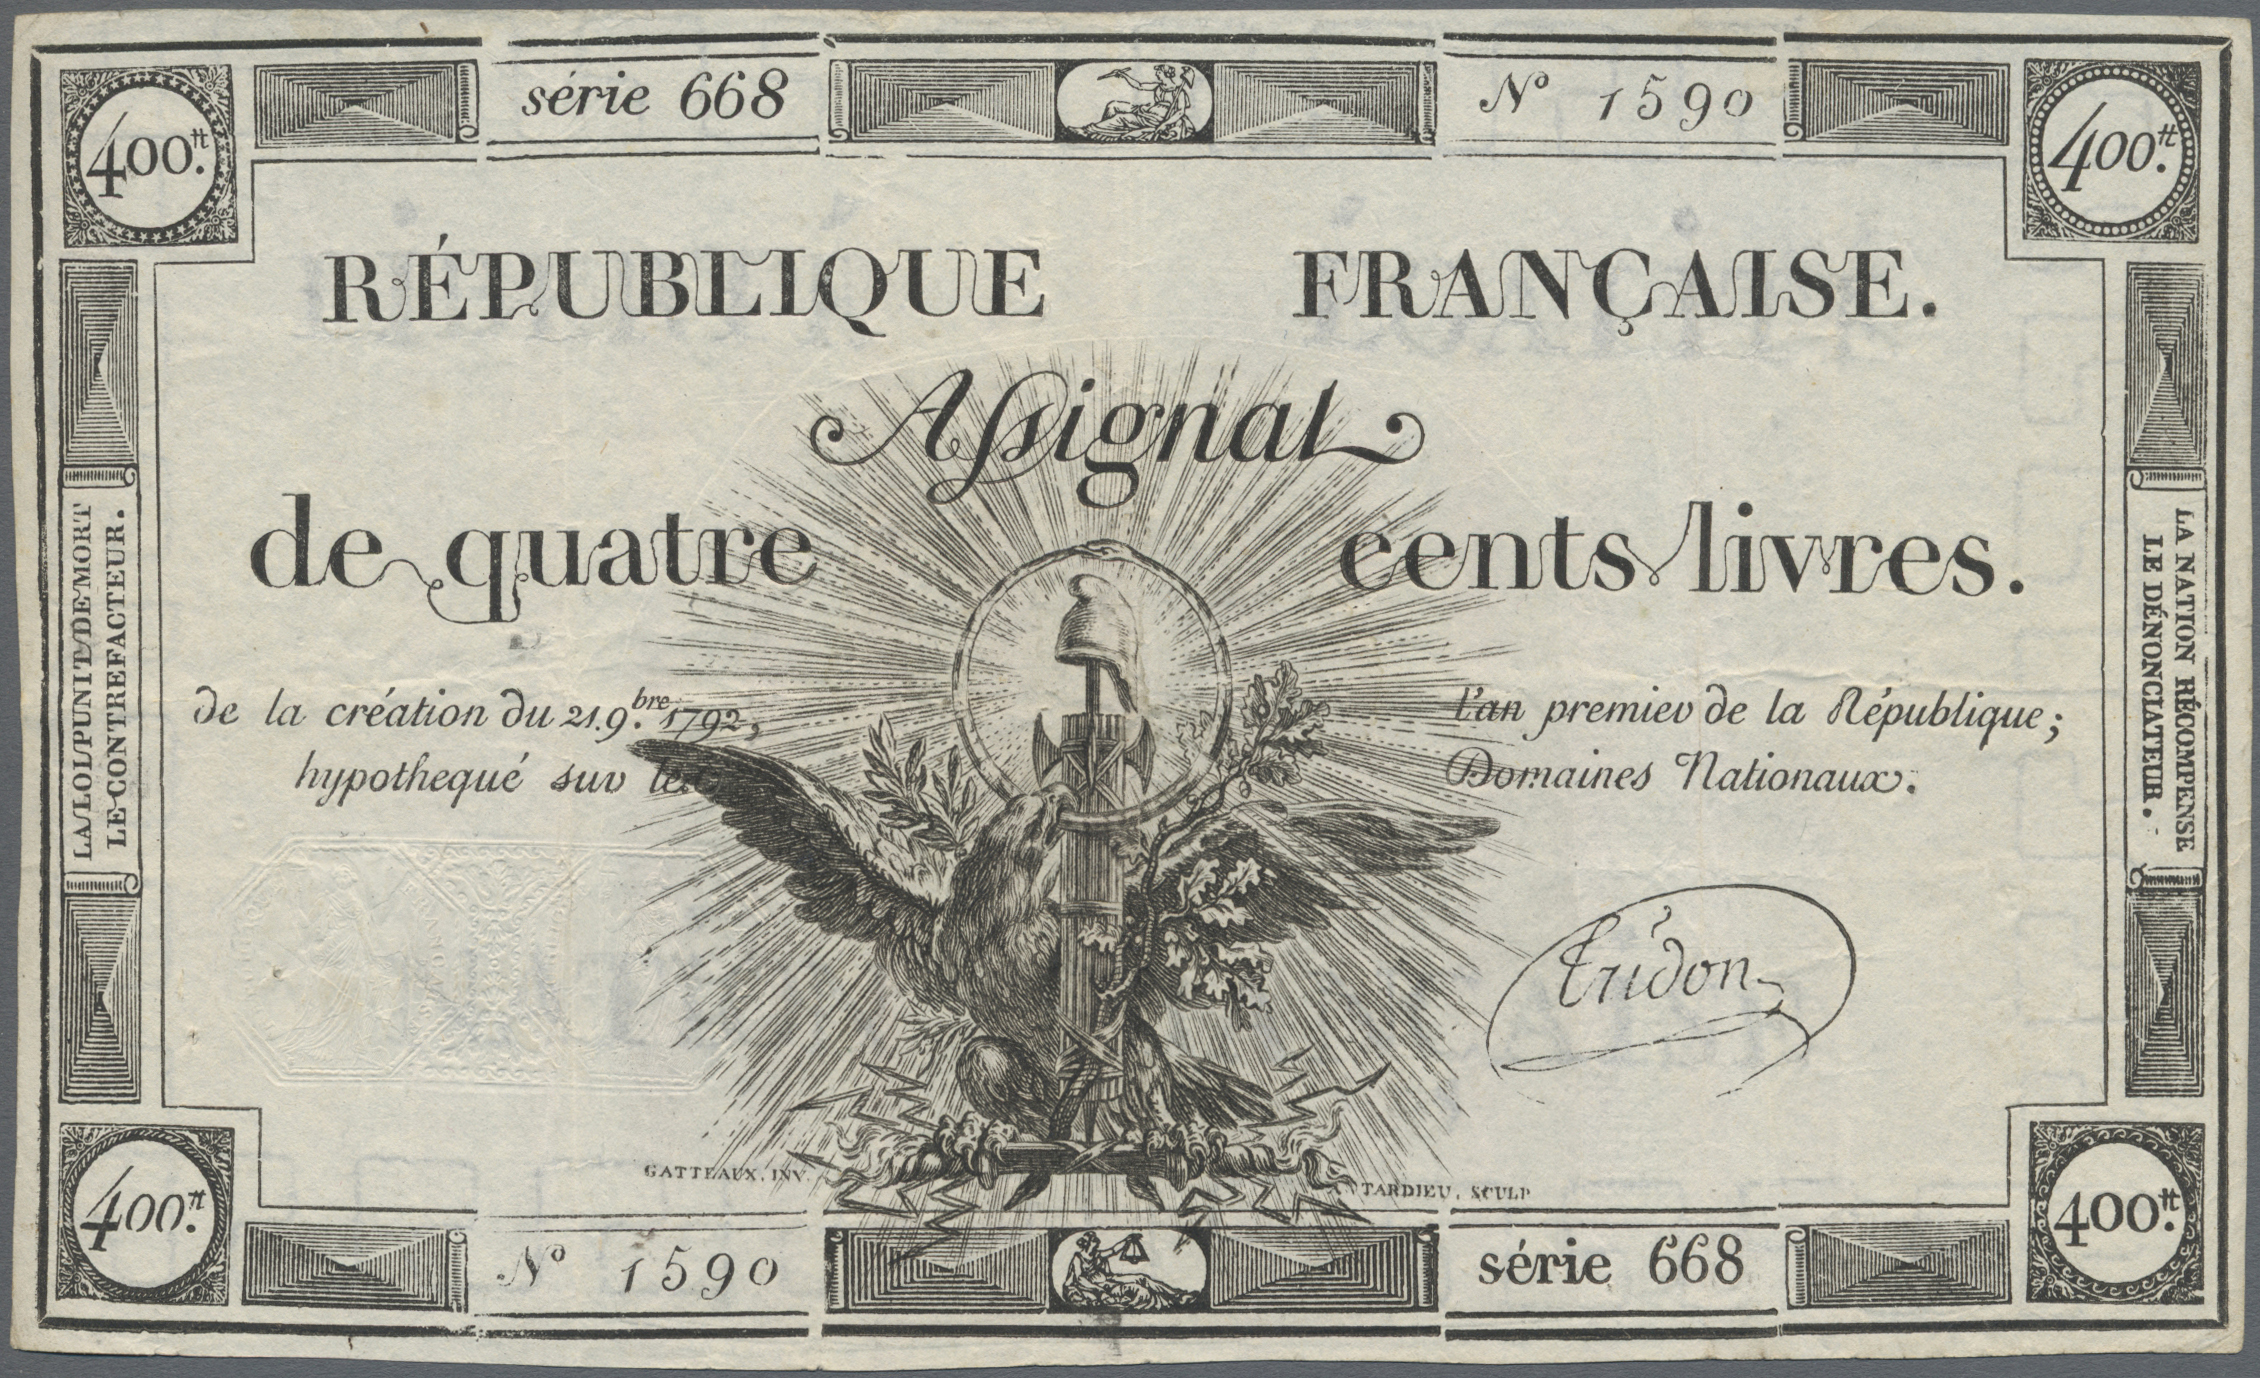 Lot 00269 - France / Frankreich | Banknoten  -  Auktionshaus Christoph Gärtner GmbH & Co. KG Sale #48 The Banknotes